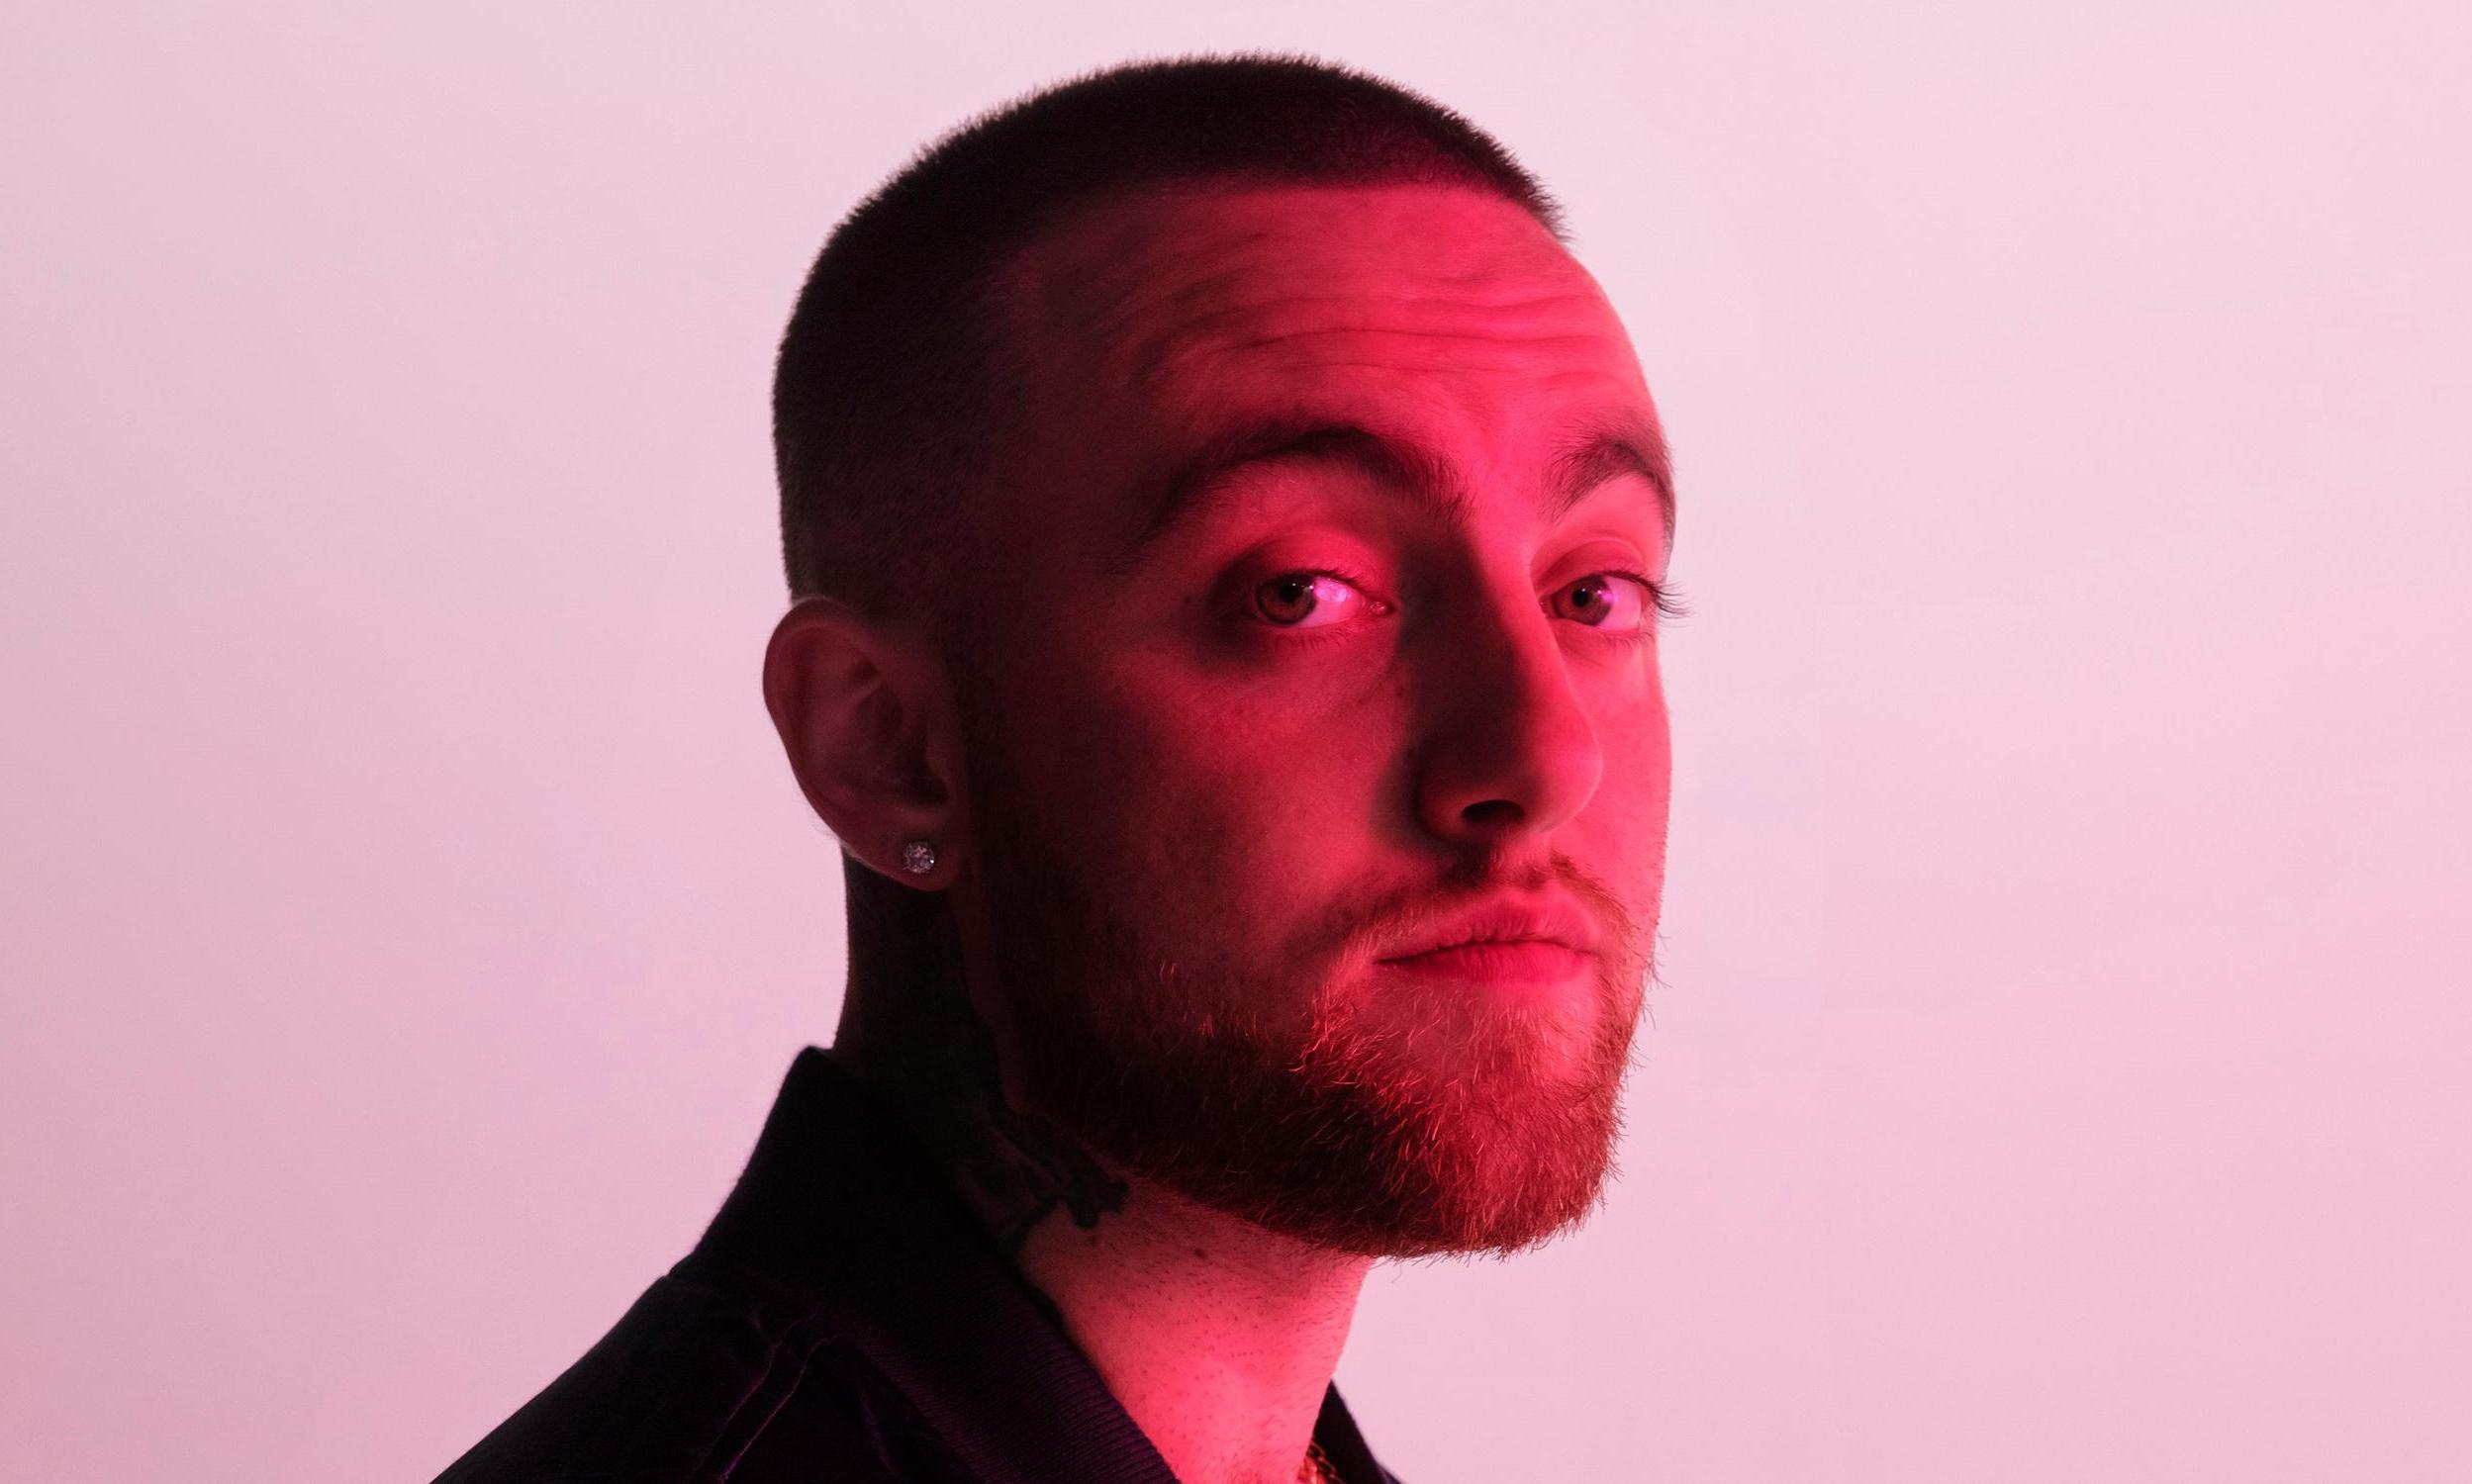 Mac Miller: Swimming review – maturing rapper in search for self-acceptance